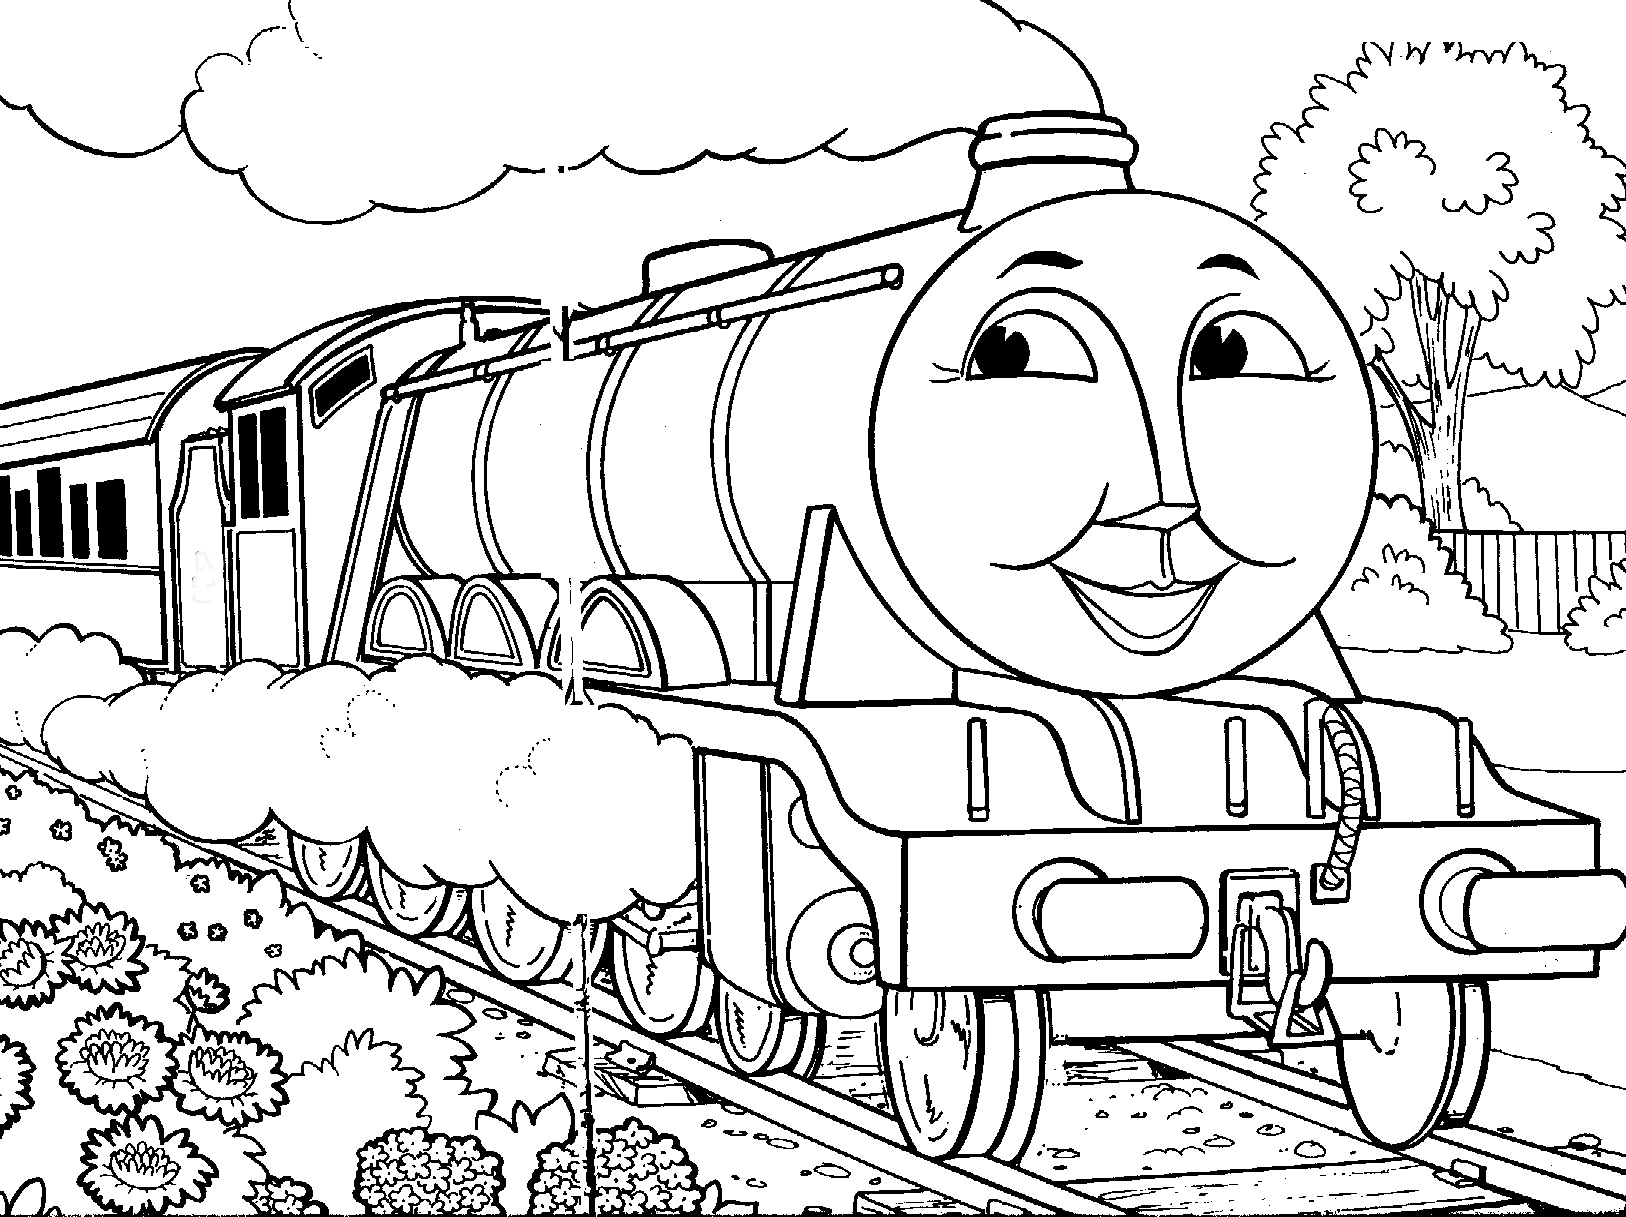 1626x1217 Train Coloring Page With Trains And Railroads Pages For Kids